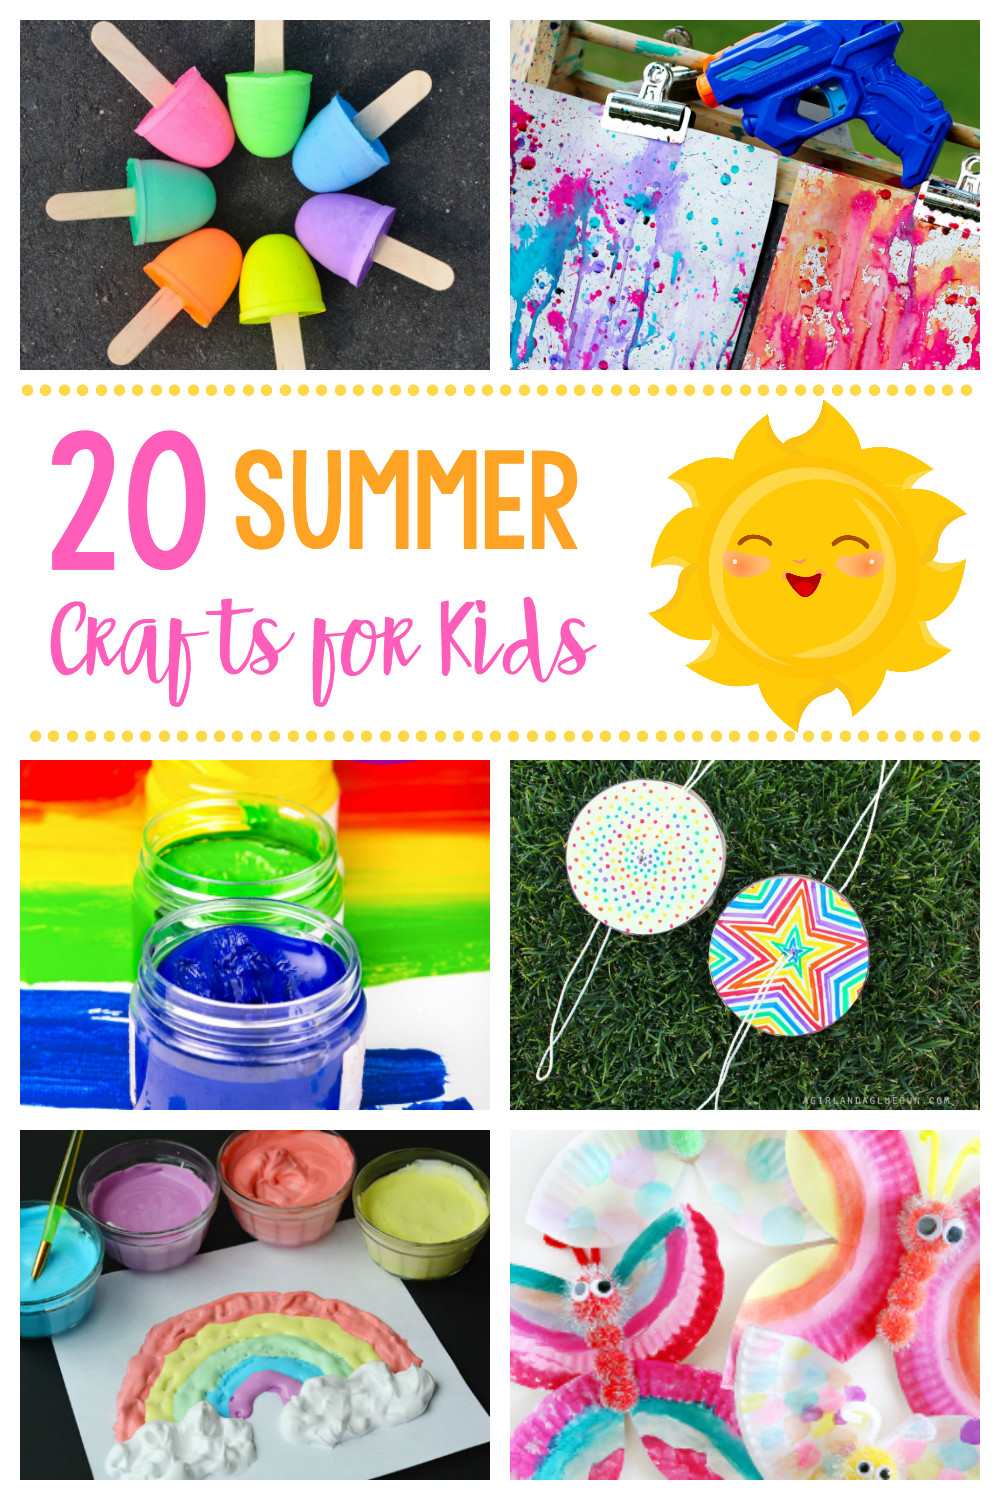 Best ideas about Easy Kids Crafts . Save or Pin 20 Simple & Fun Summer Crafts for Kids Now.